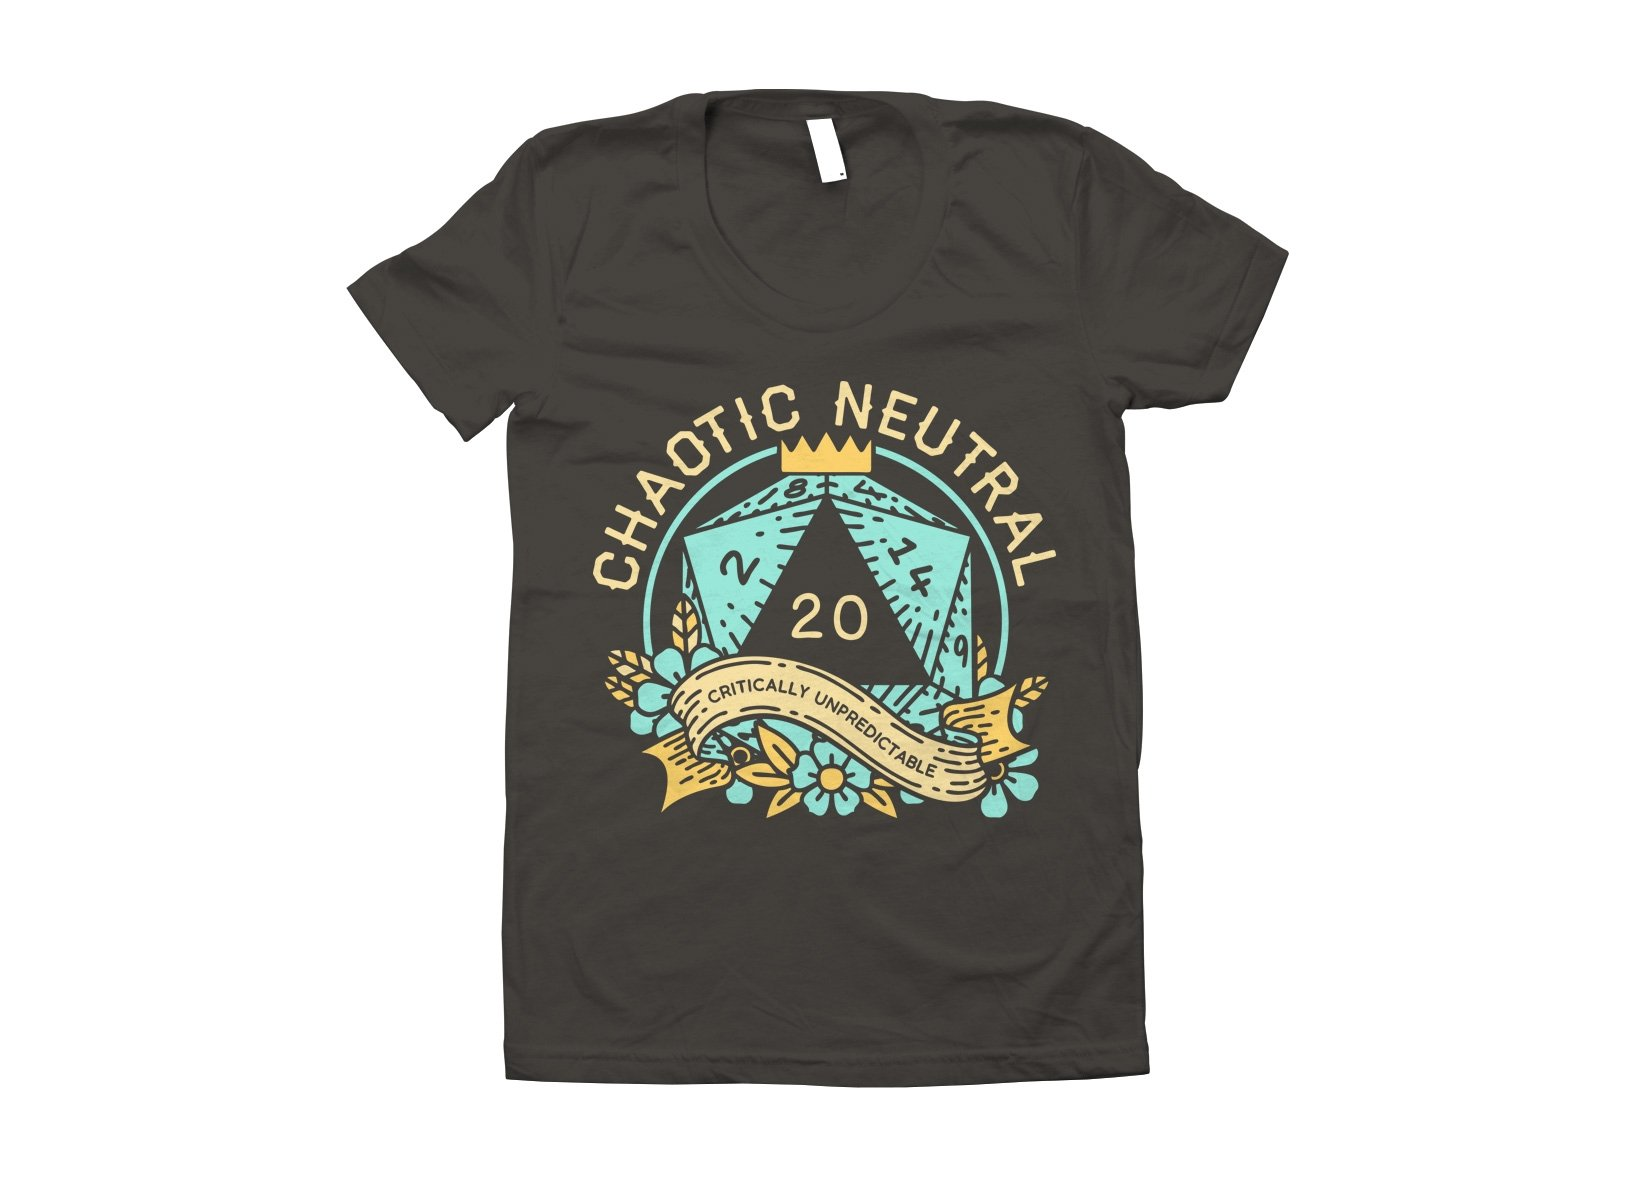 Chaotic Neutral on Juniors T-Shirt